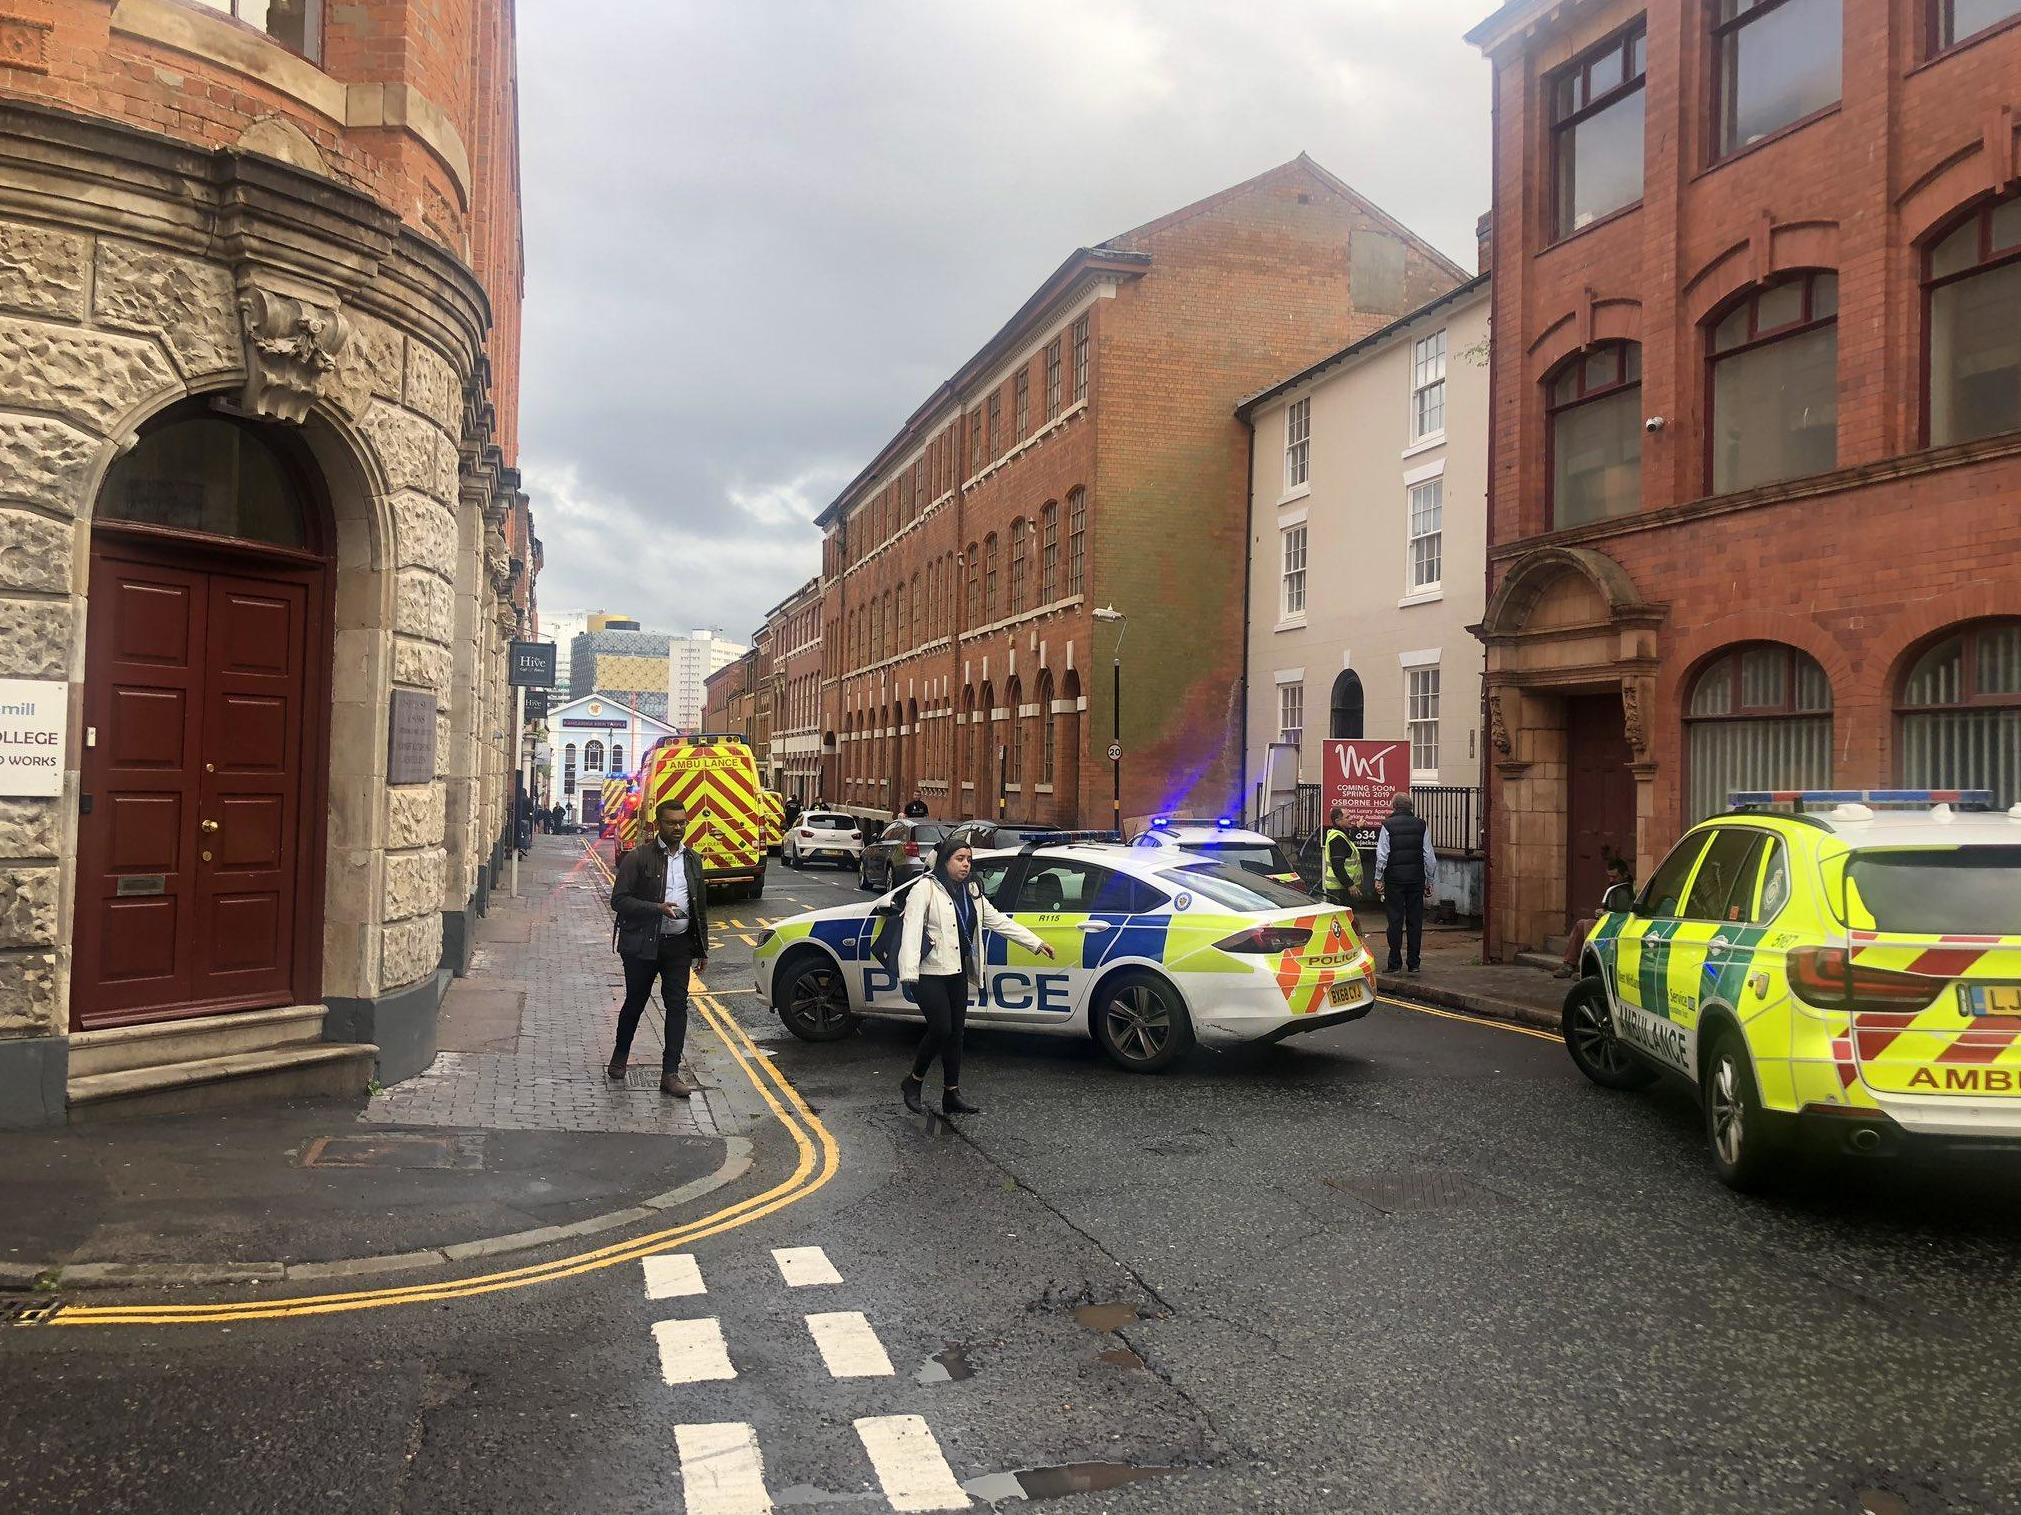 Birmingham building collapse: At least one injured in 'major incident' in city's Jewellery Quarter